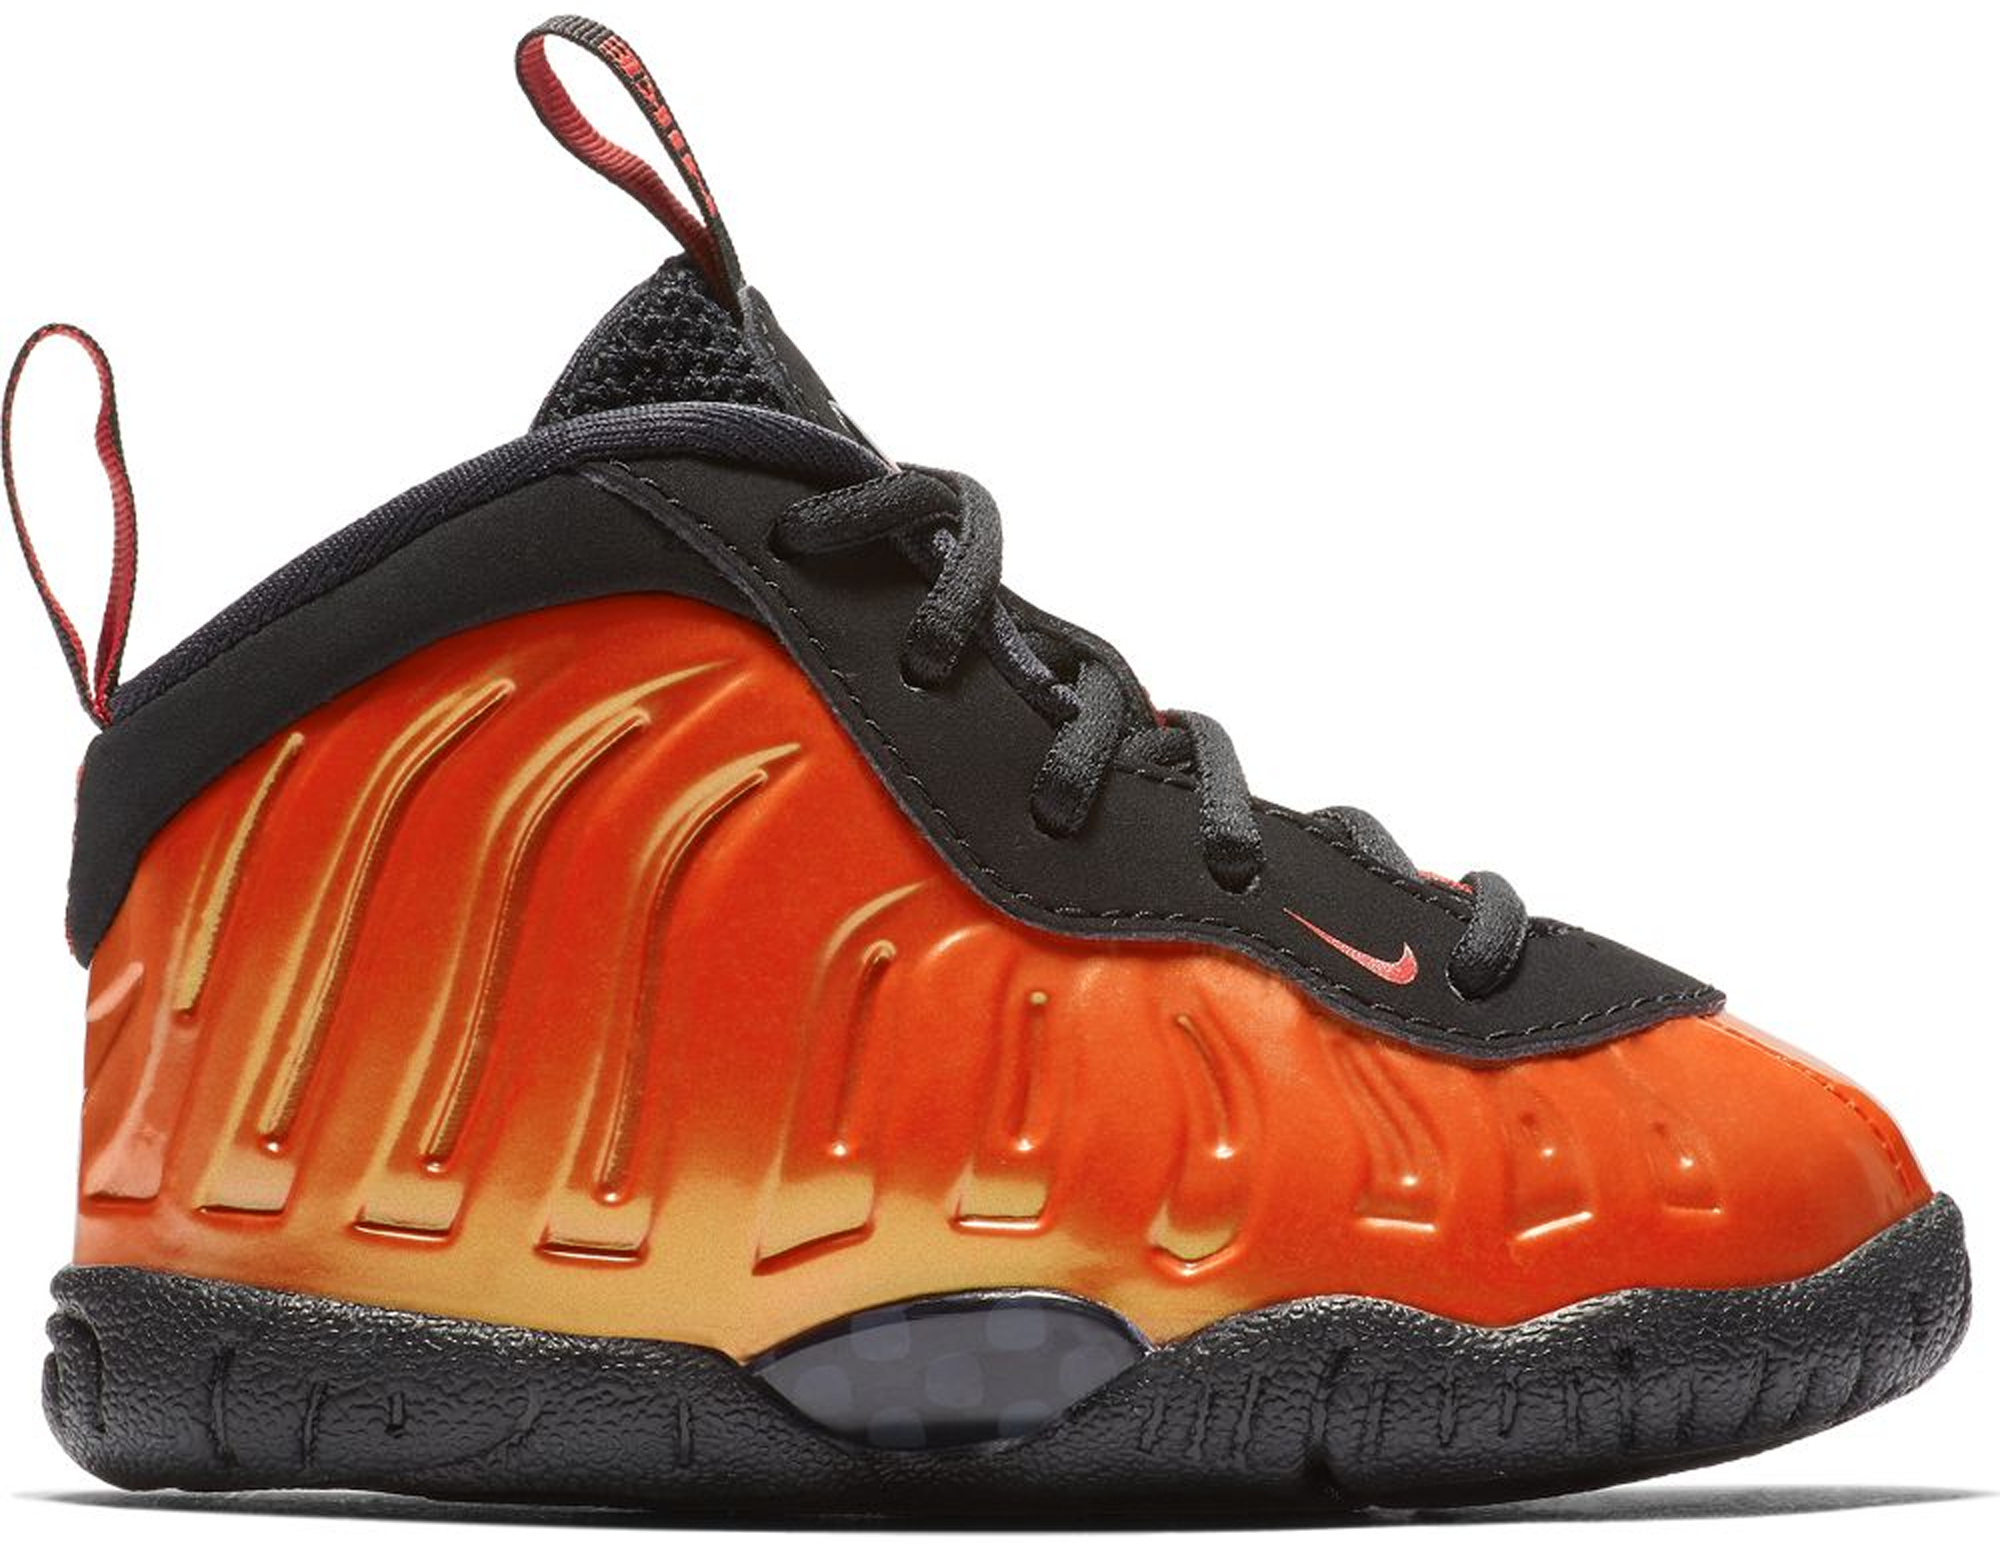 Set To Drop: Air Foamposite One Rugged Orange? The ...